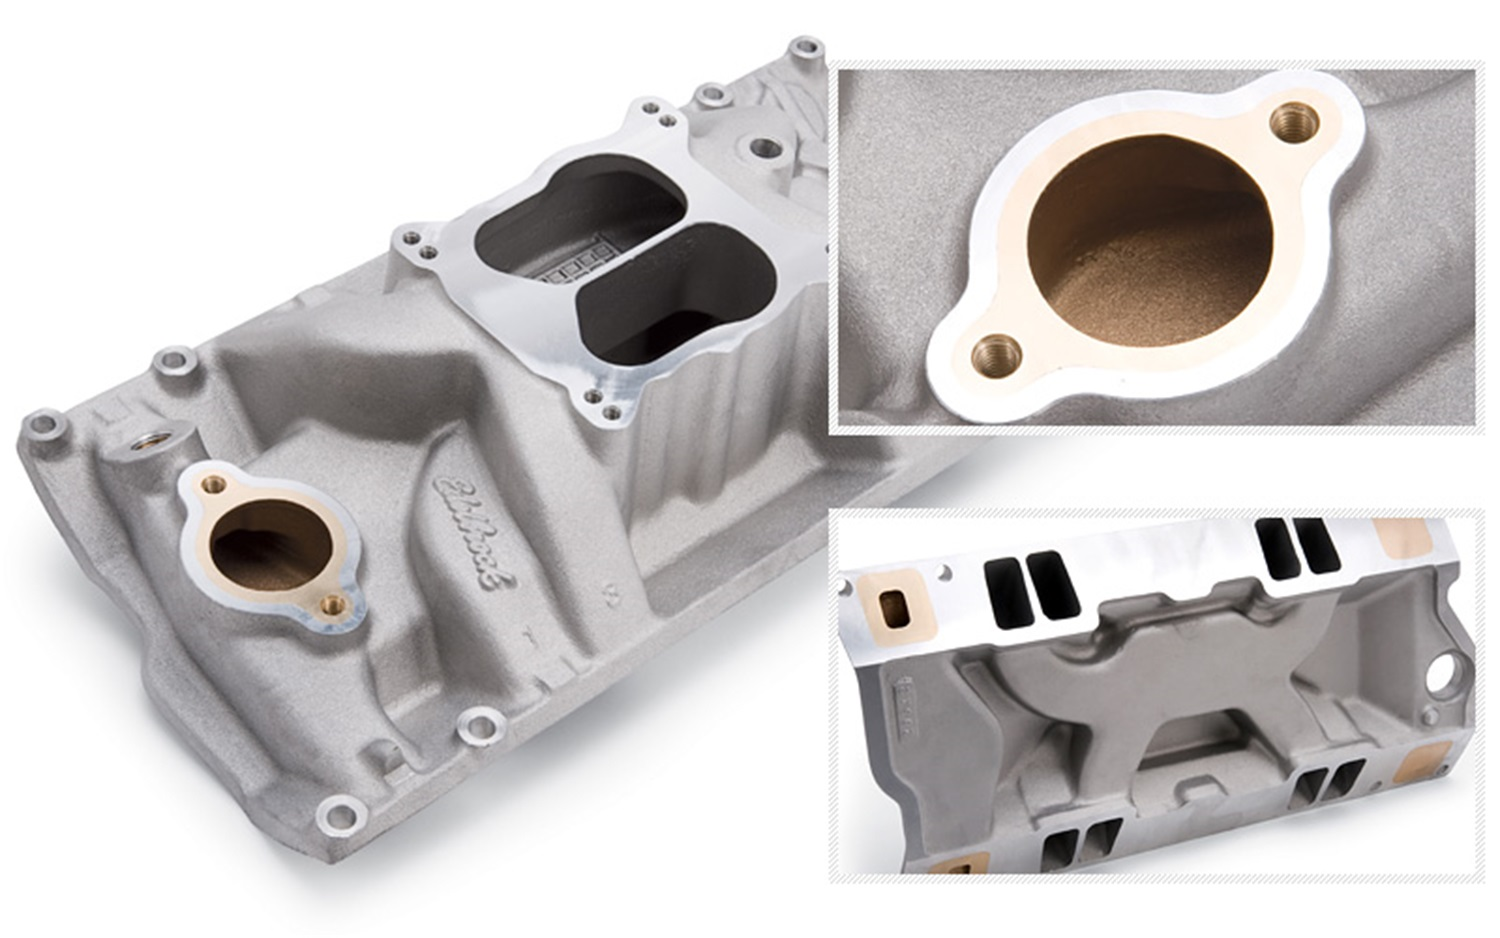 EDELBROCK 2561 Marine Intake Manifold  For Use w/Chevy Big Block 1966-1975  Oval Port  For Spread Or Square Bore Carbs at Sears.com